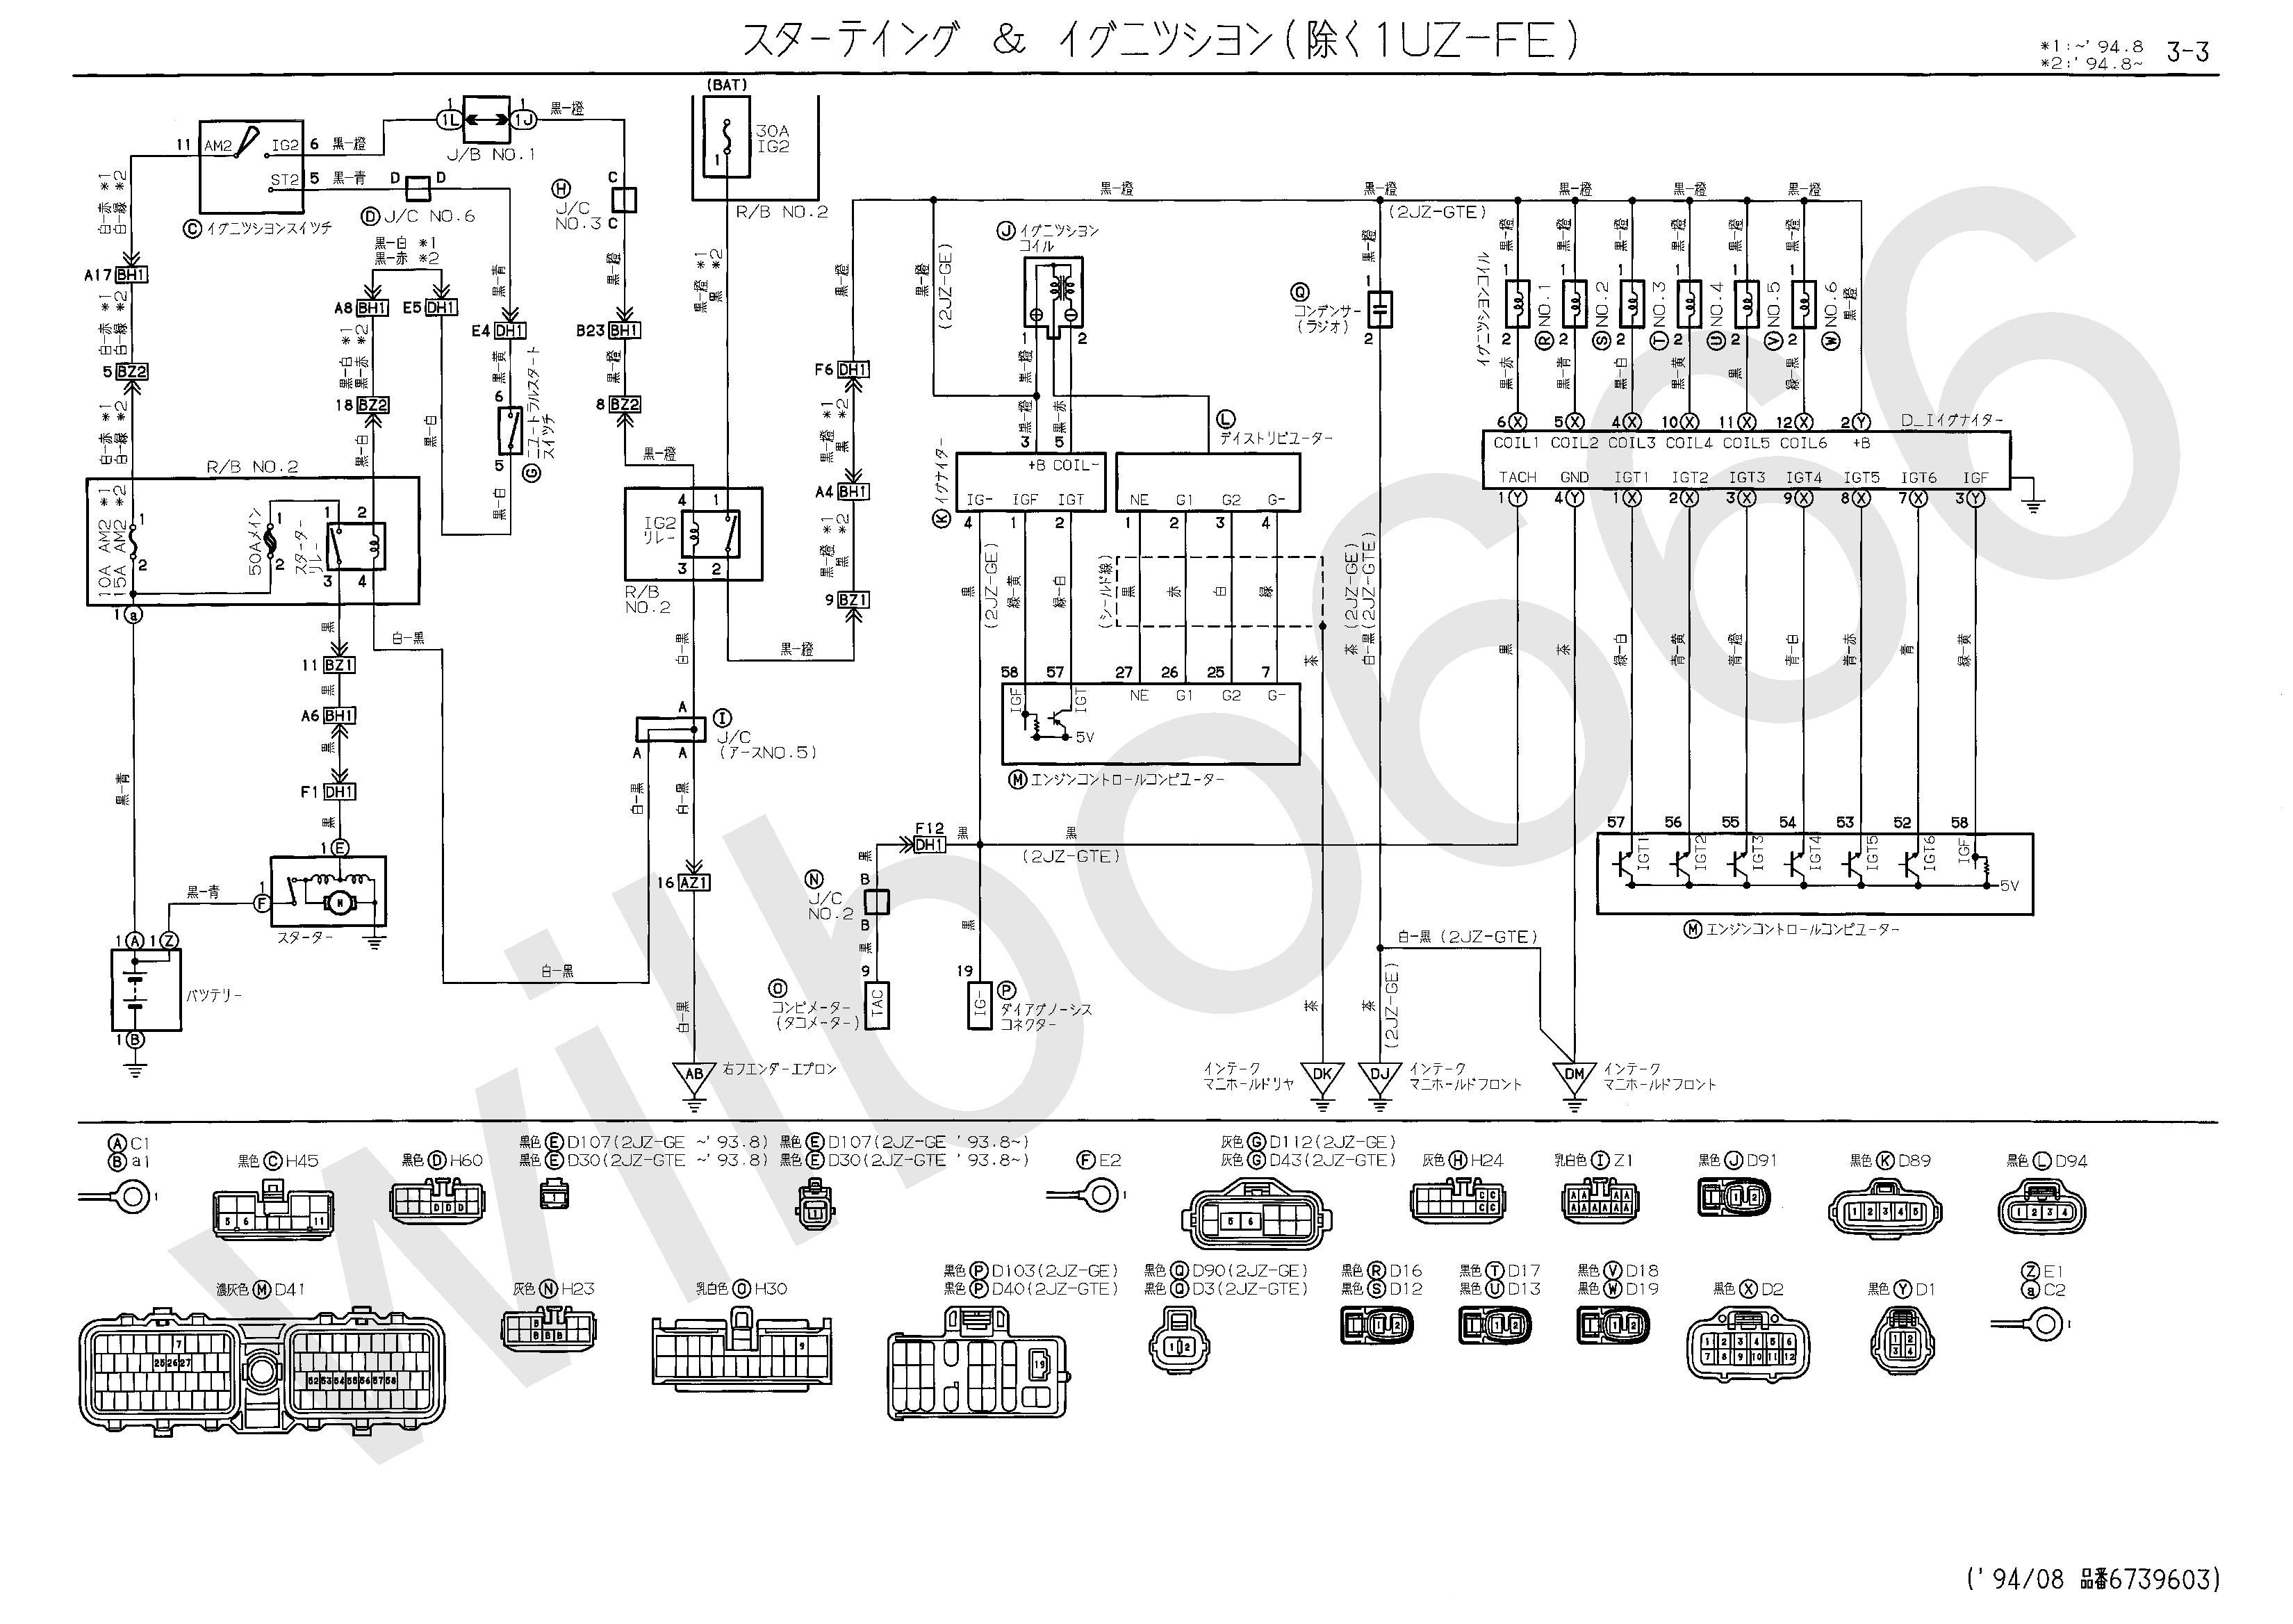 JZS14%23%2C UZS14%23 Electrical Wiring Diagram 6739604 3 3 wilbo666 2jz gte jzs147 aristo engine wiring hks sld type 2 wiring diagram at reclaimingppi.co